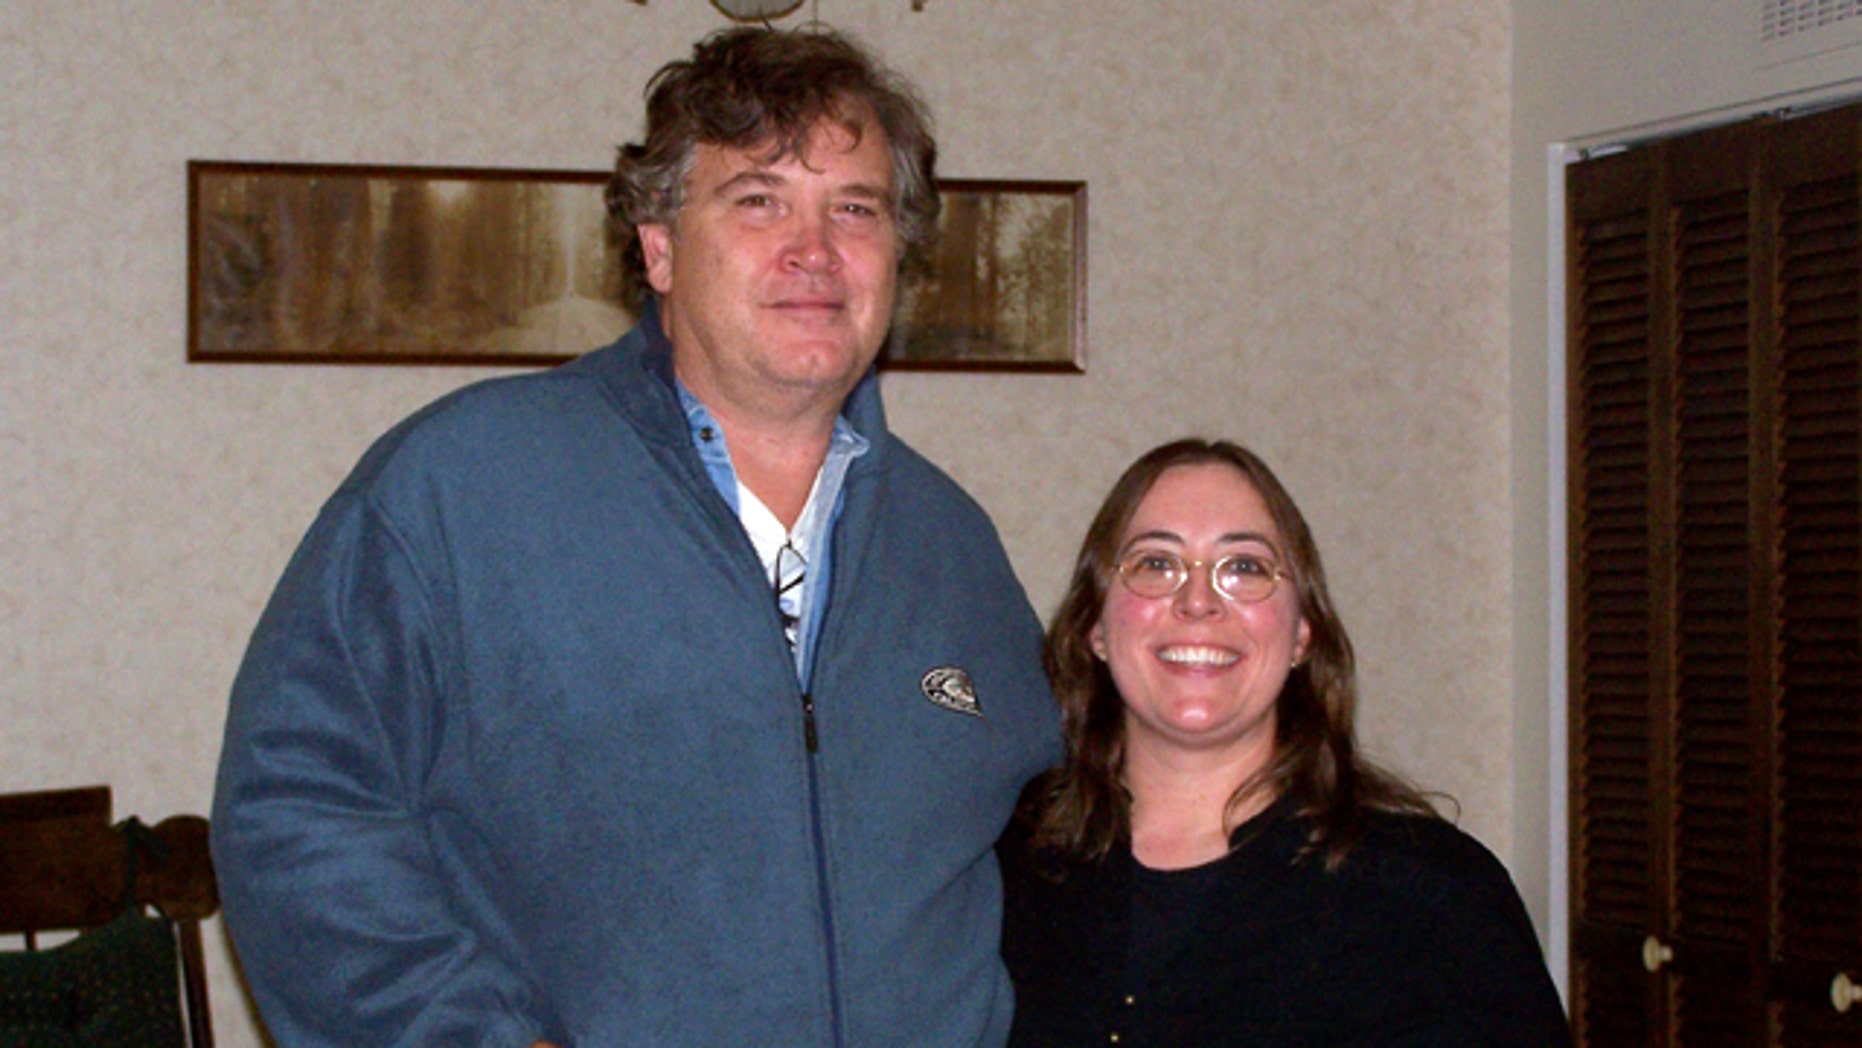 Nov. 30, 2012: This undated photo provided by Casper College shows professors Jim Krumm and Heidi Arnold, the couple killed by Krumm's adult son Chris Krumm.